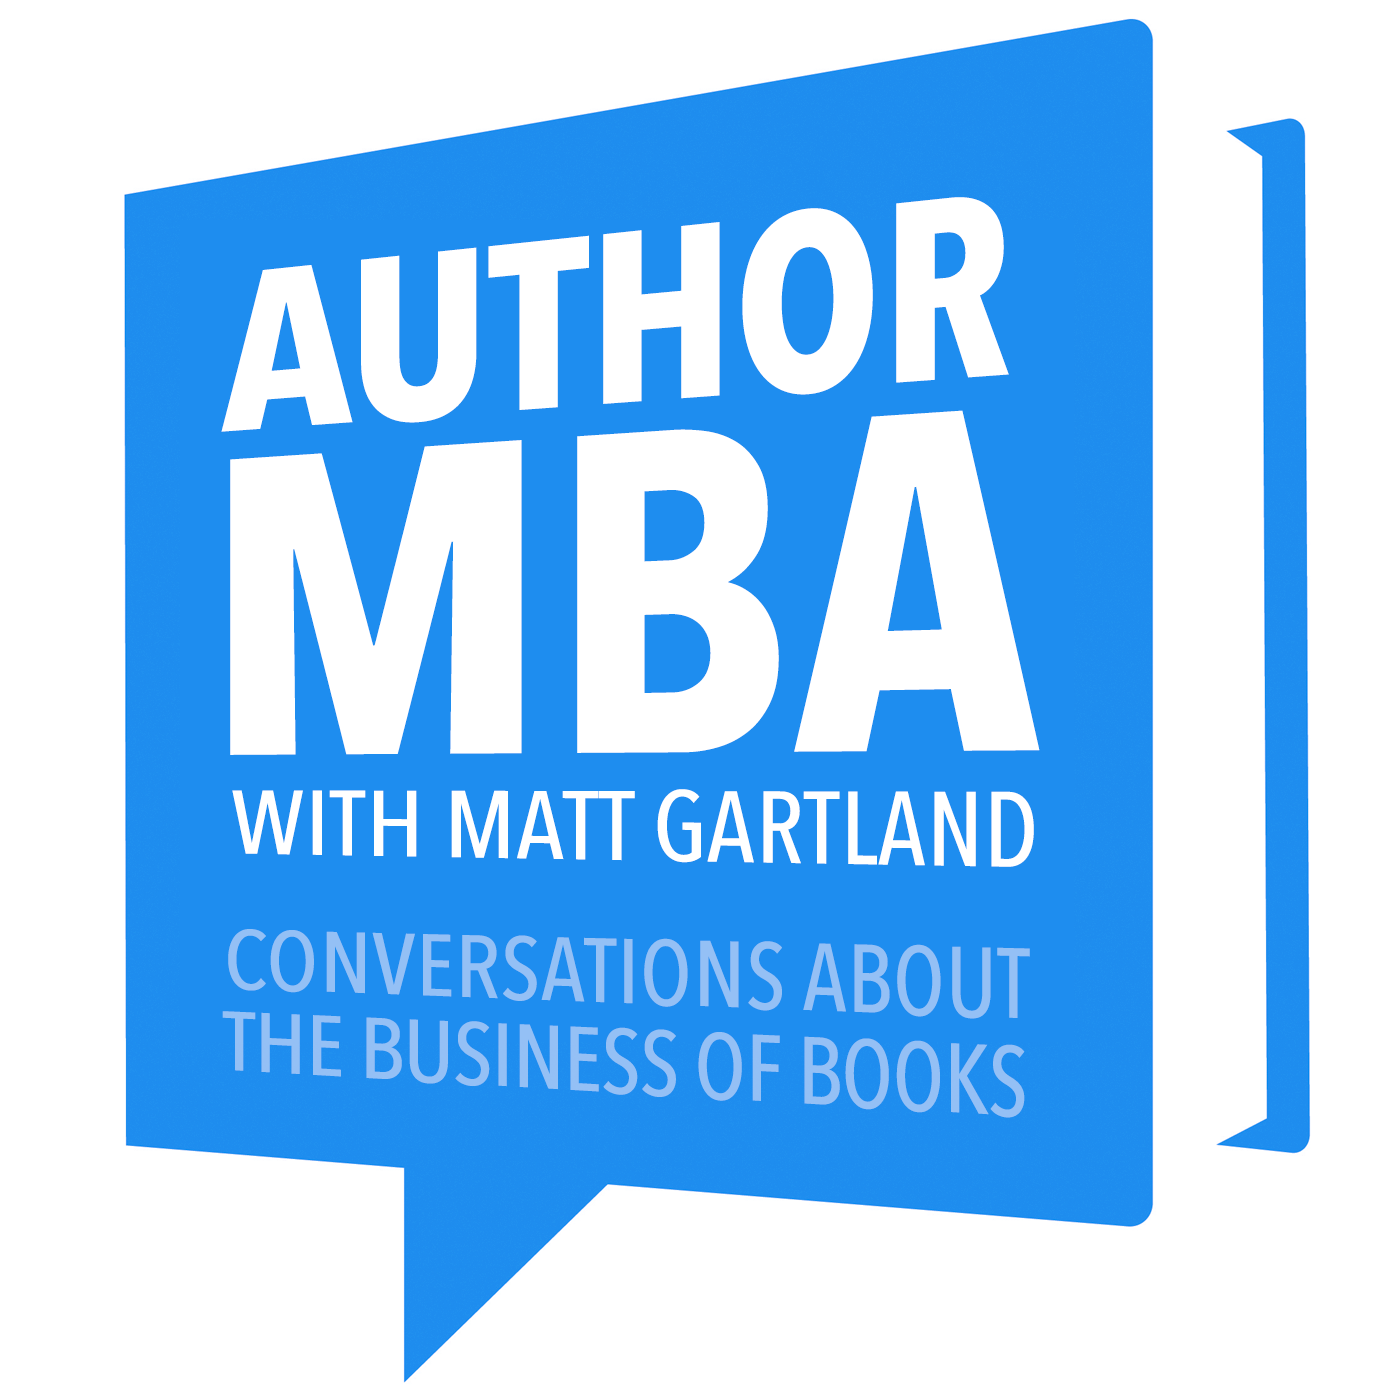 AuthorMBA: Conversations About Book Marketing, Publishing, Author Platforms, and Other Business Strategies for Authors